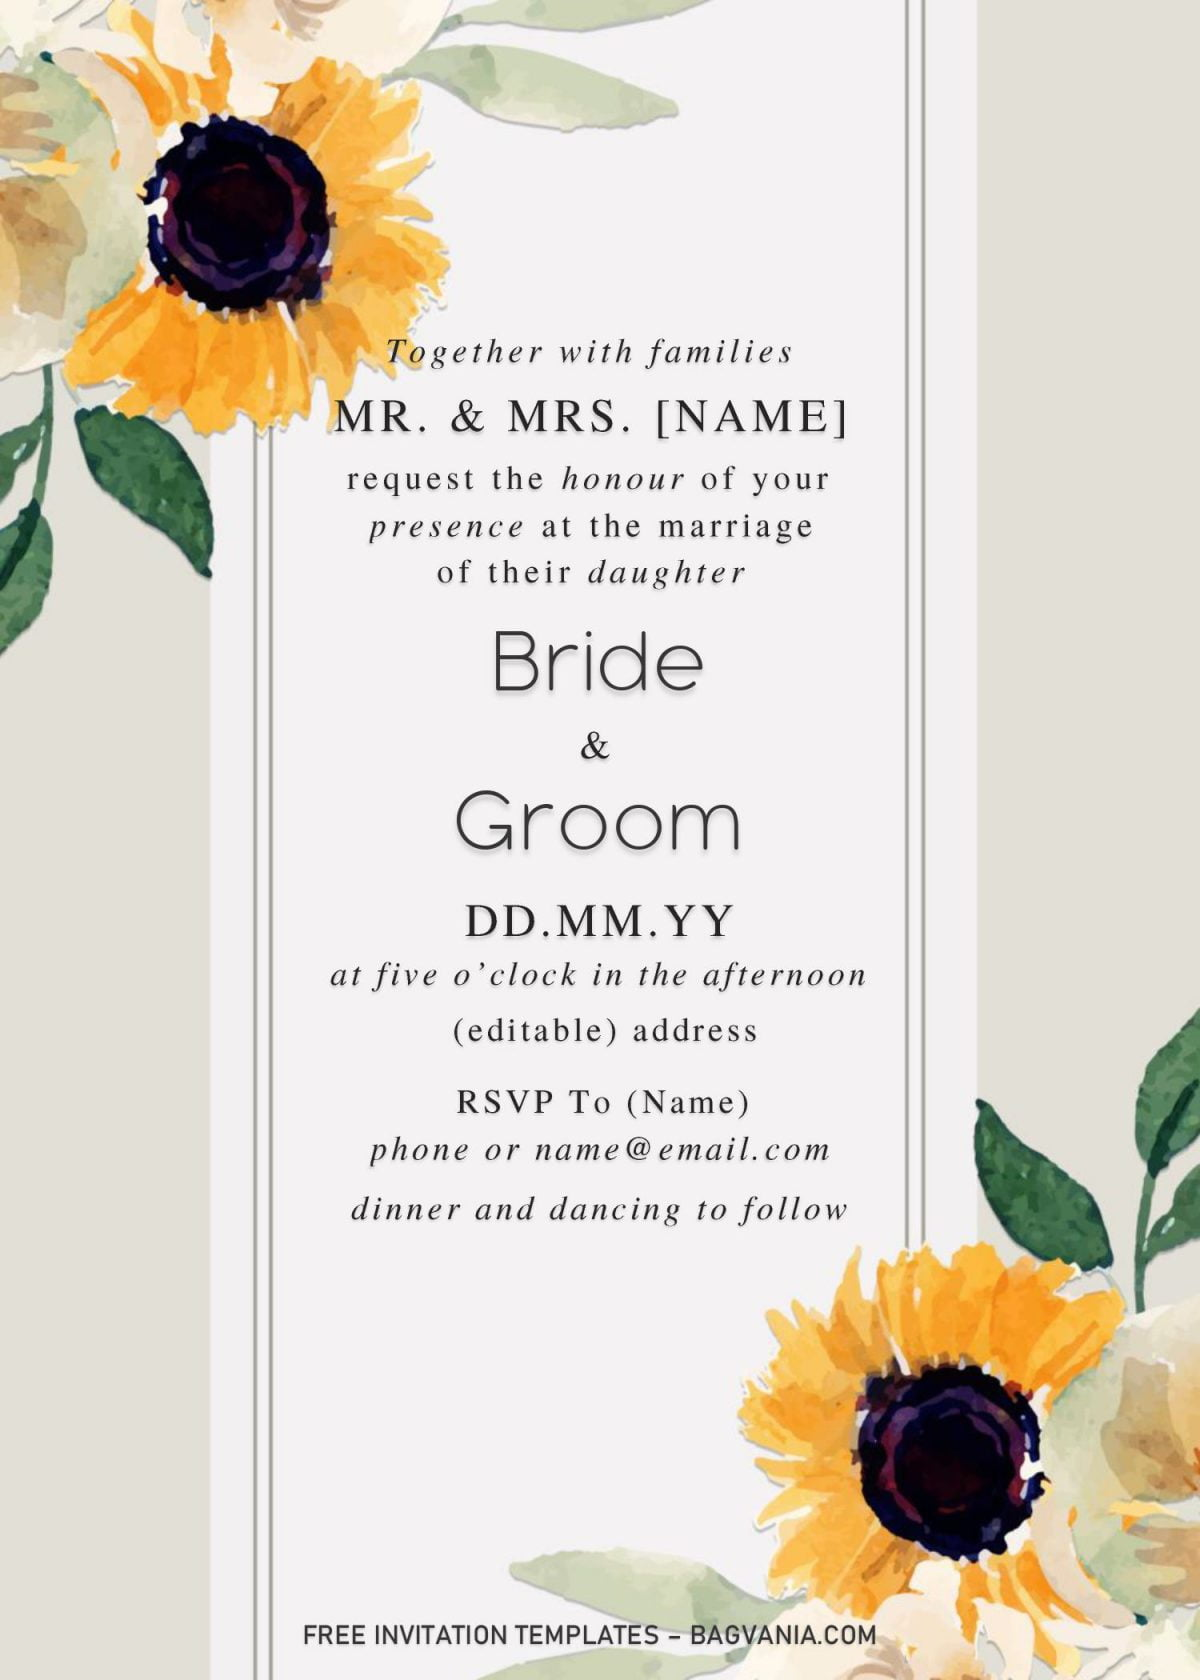 Sunflower Wedding Invitation Templates - Editable With Microsoft Word and has watercolor sunflowers